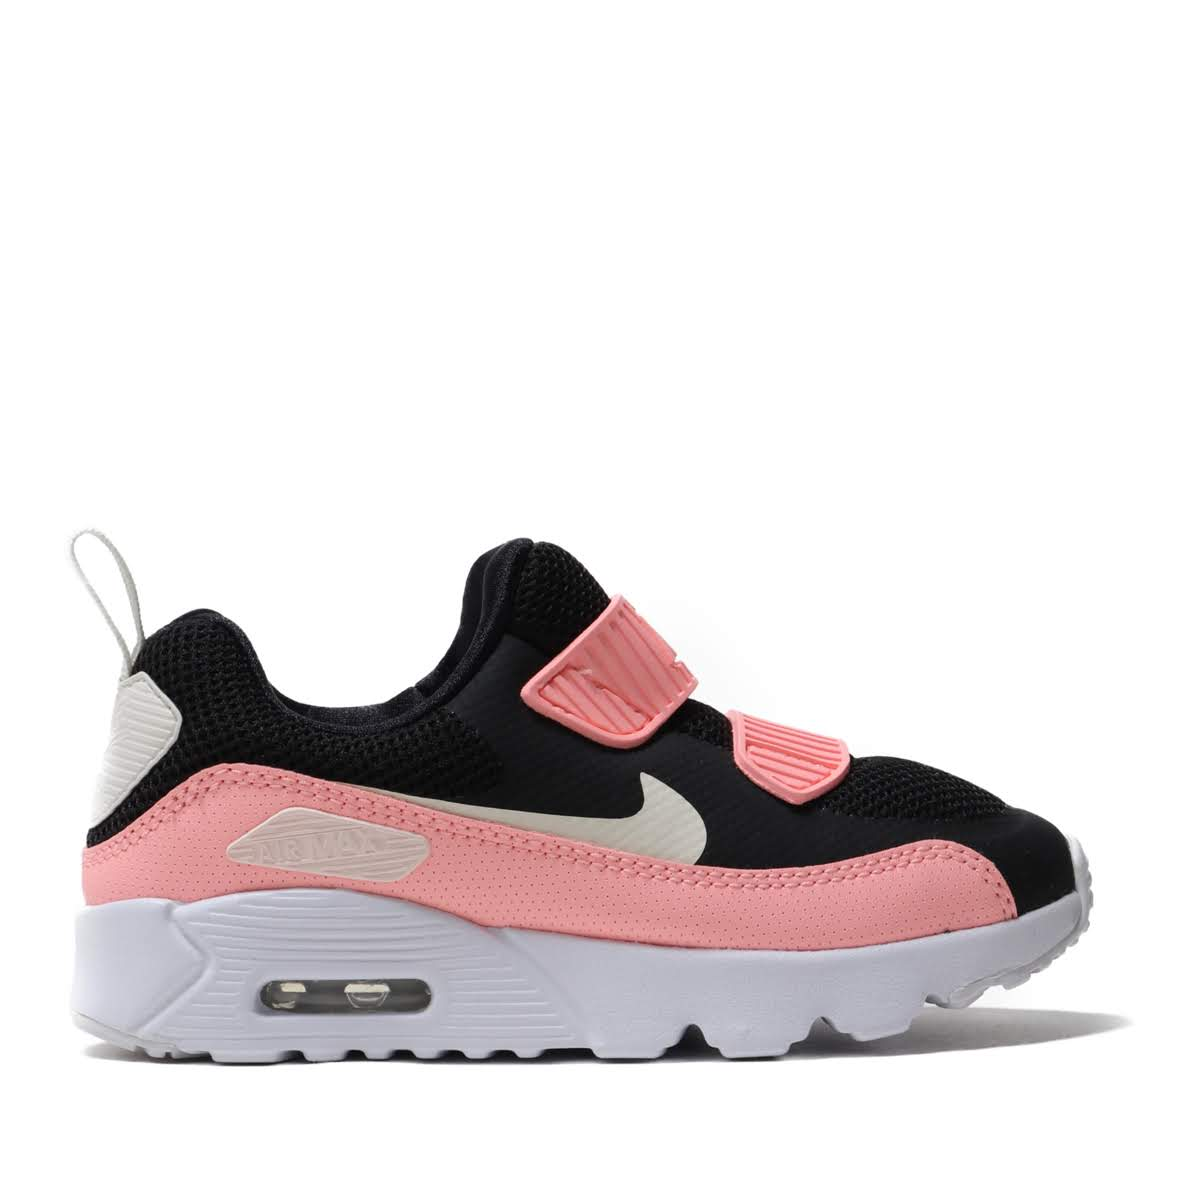 NIKE AIR MAX TINY 90 PS(BLACK/PALE IVORY-PINK TINT-WHITE)(ナイキ エア マックス タイニー 90 PS)【キッズ】【スニーカー】【19FA-I】